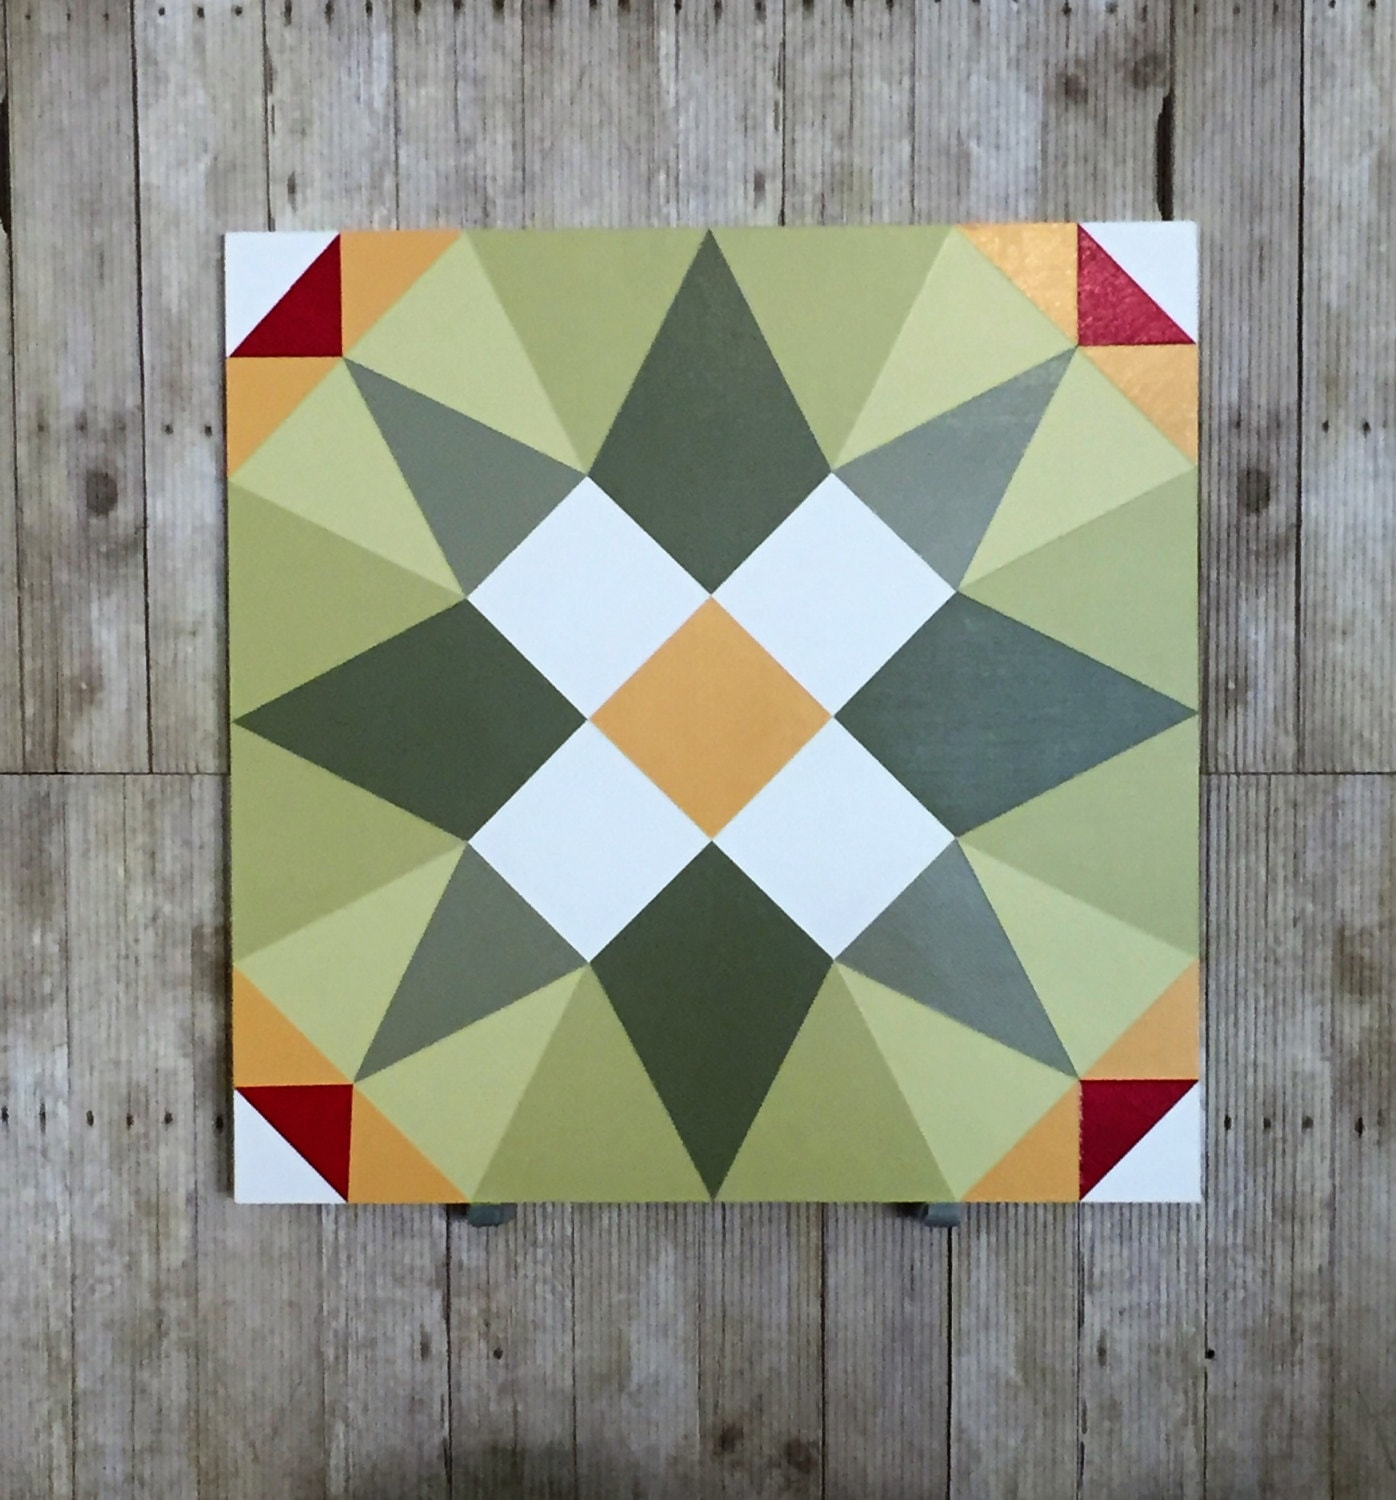 It's just a graphic of Sizzling Printable Barn Quilt Patterns